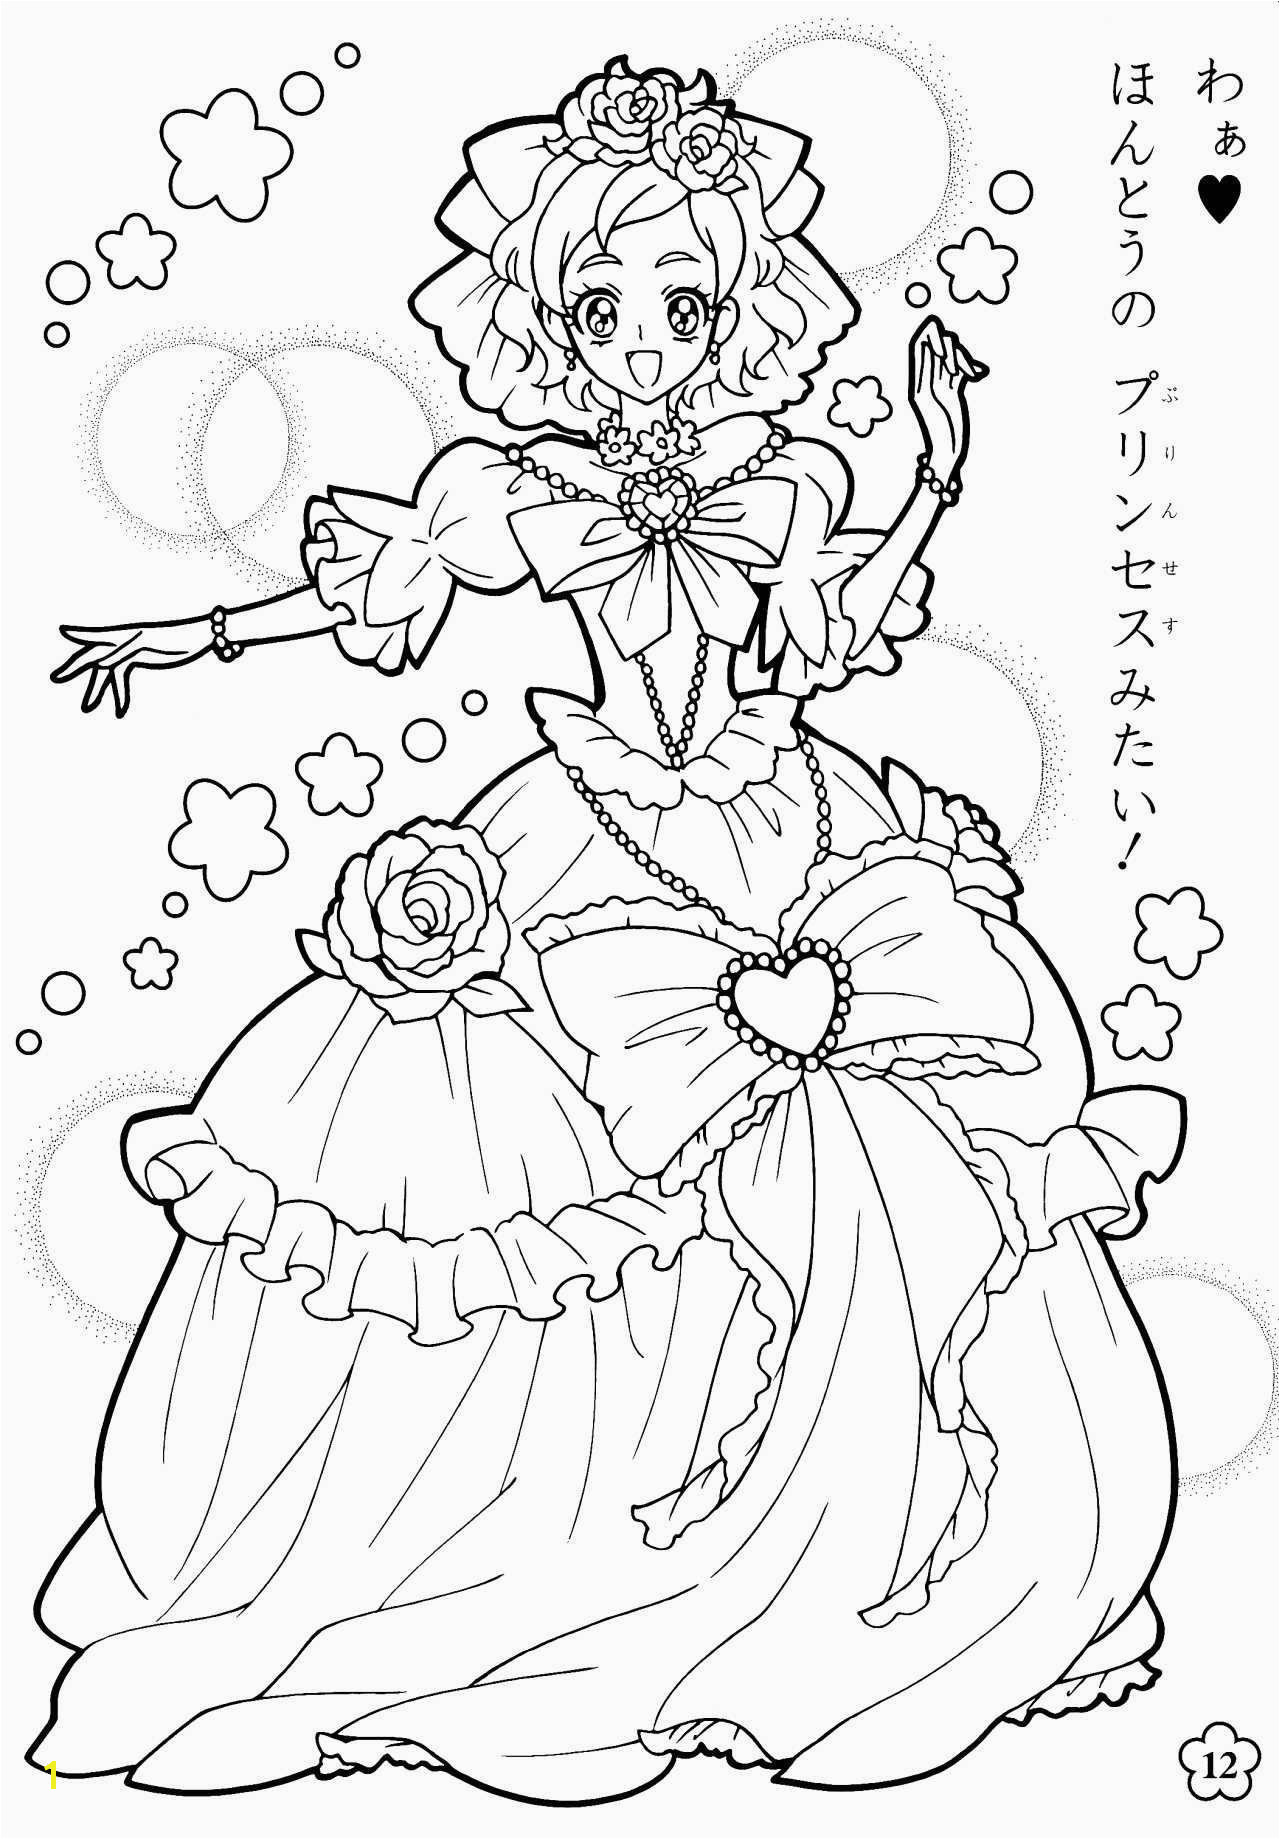 Awesome Coloring Pages Elegant Awesome Coloring Pages to Coloring Page Awesome Coloring Page 0d Awesome